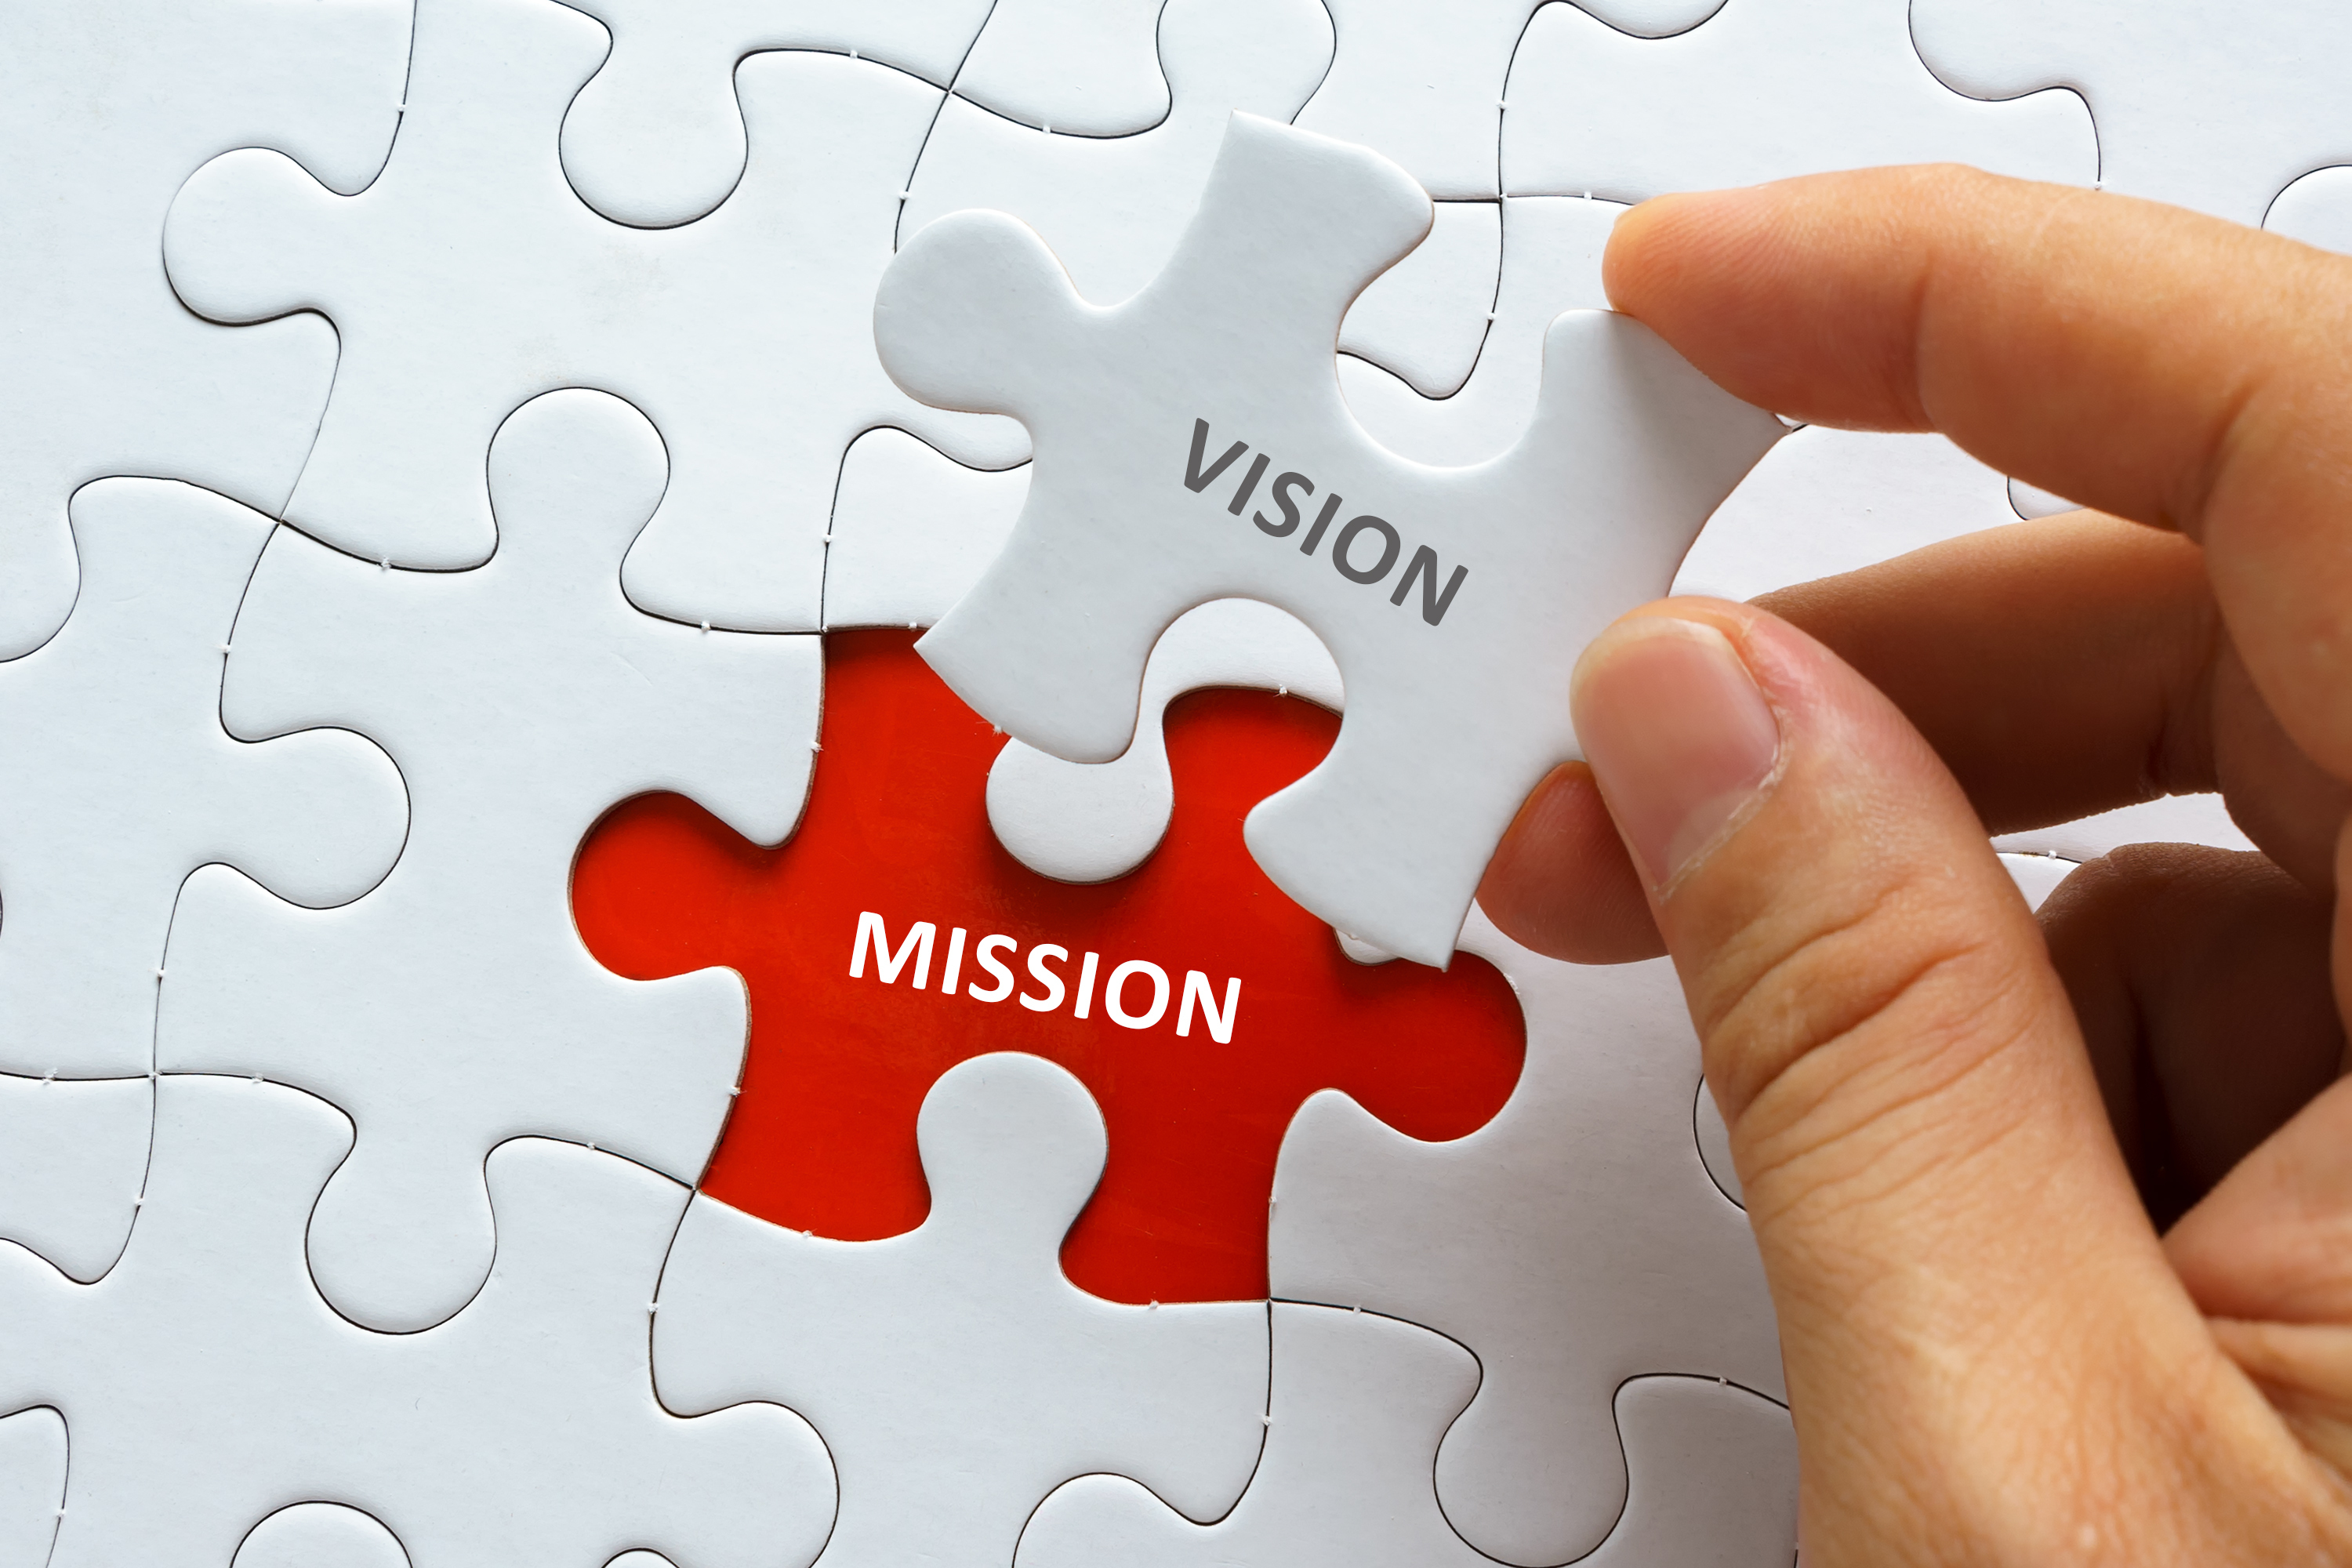 The Koinonia Way is to create a collaborative environment that empowers and motivates people to do their best every day